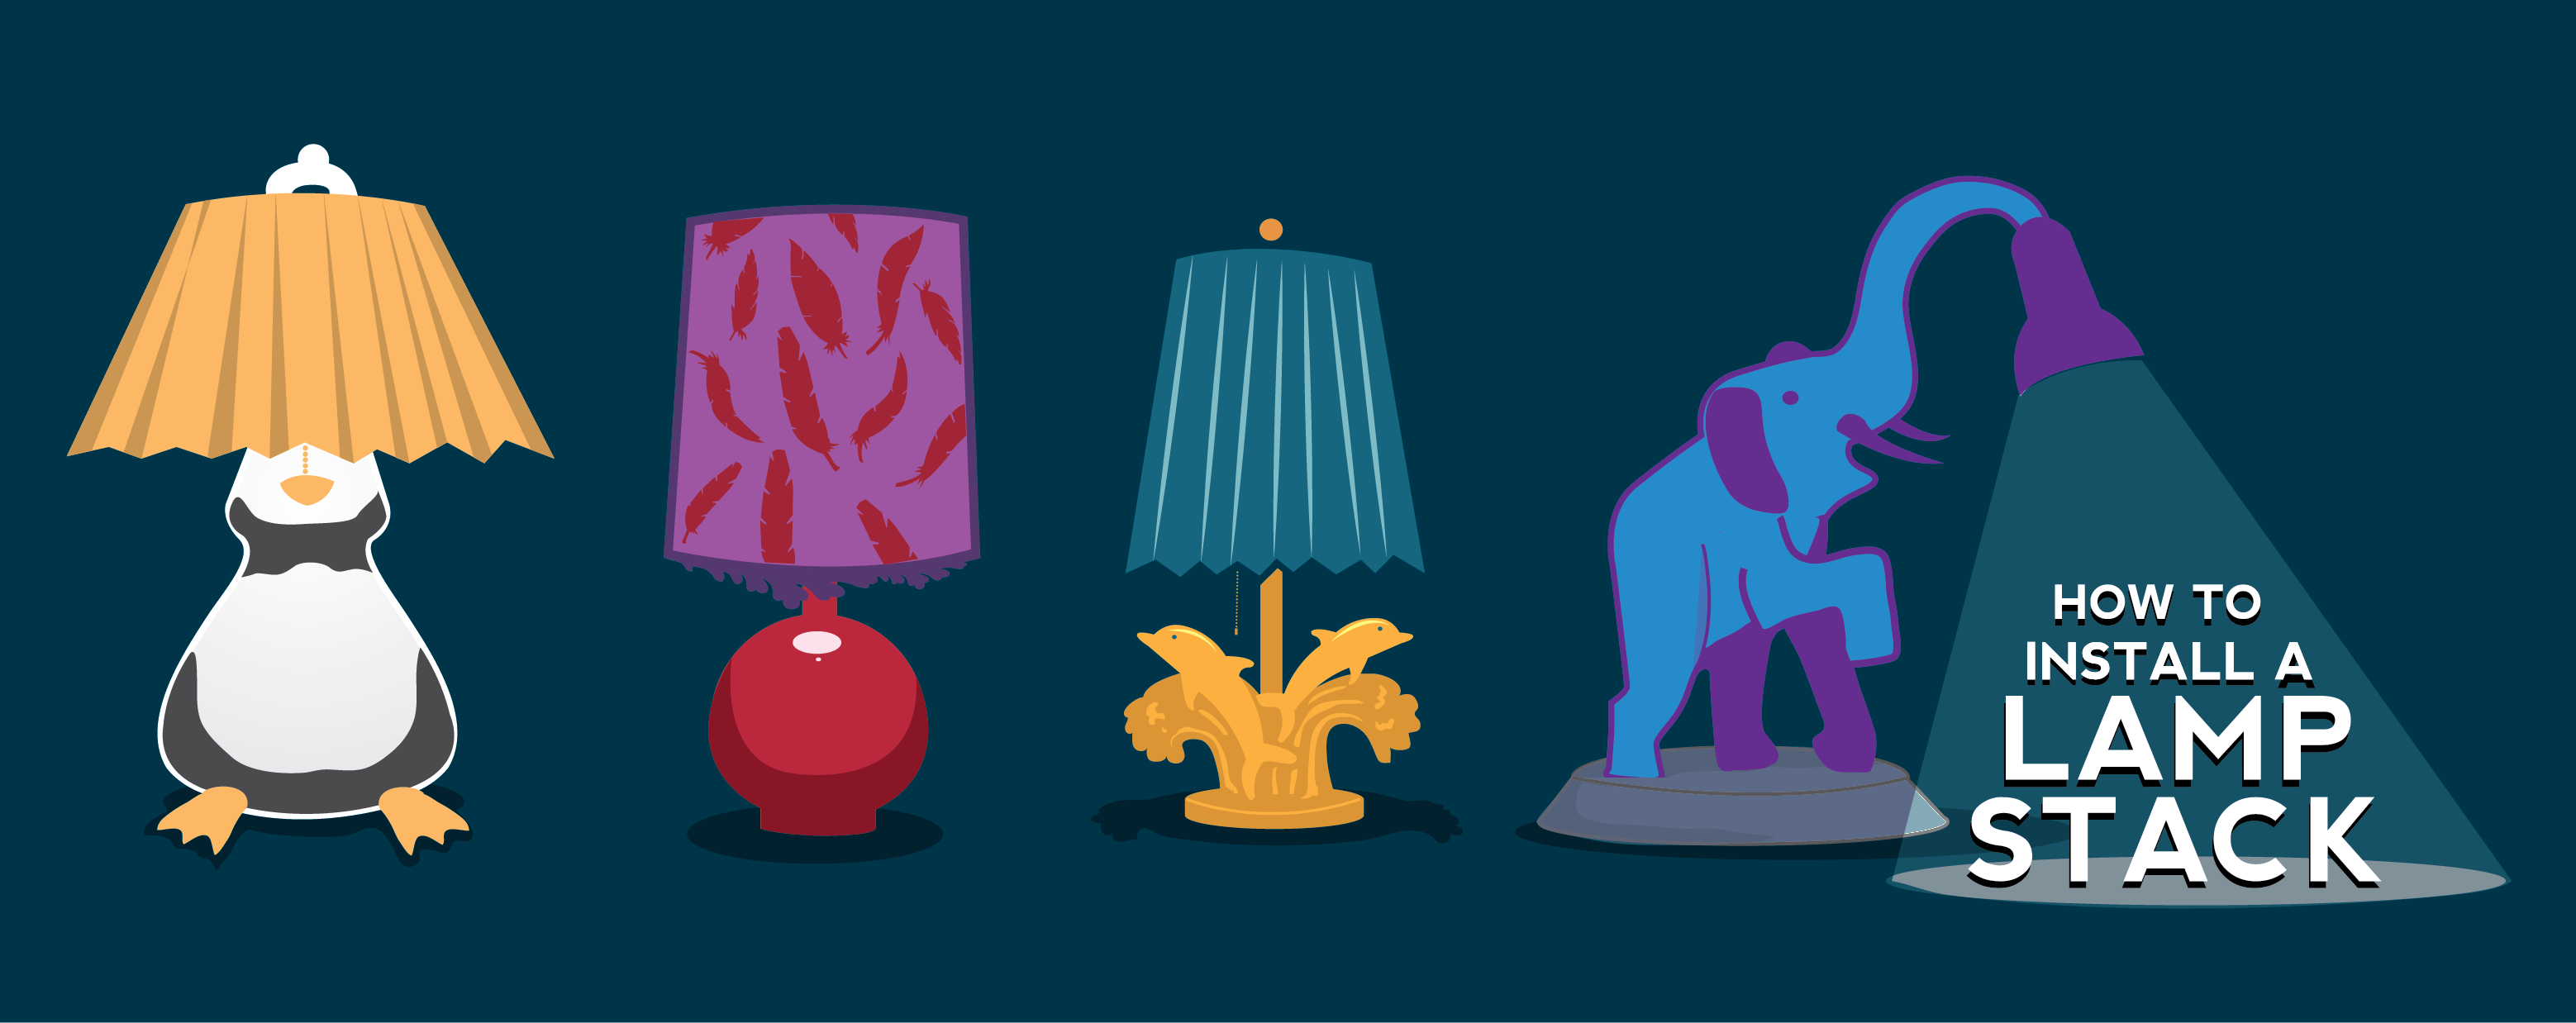 LAMP Illustration by Walker Cahall http://www.waltronic.net/